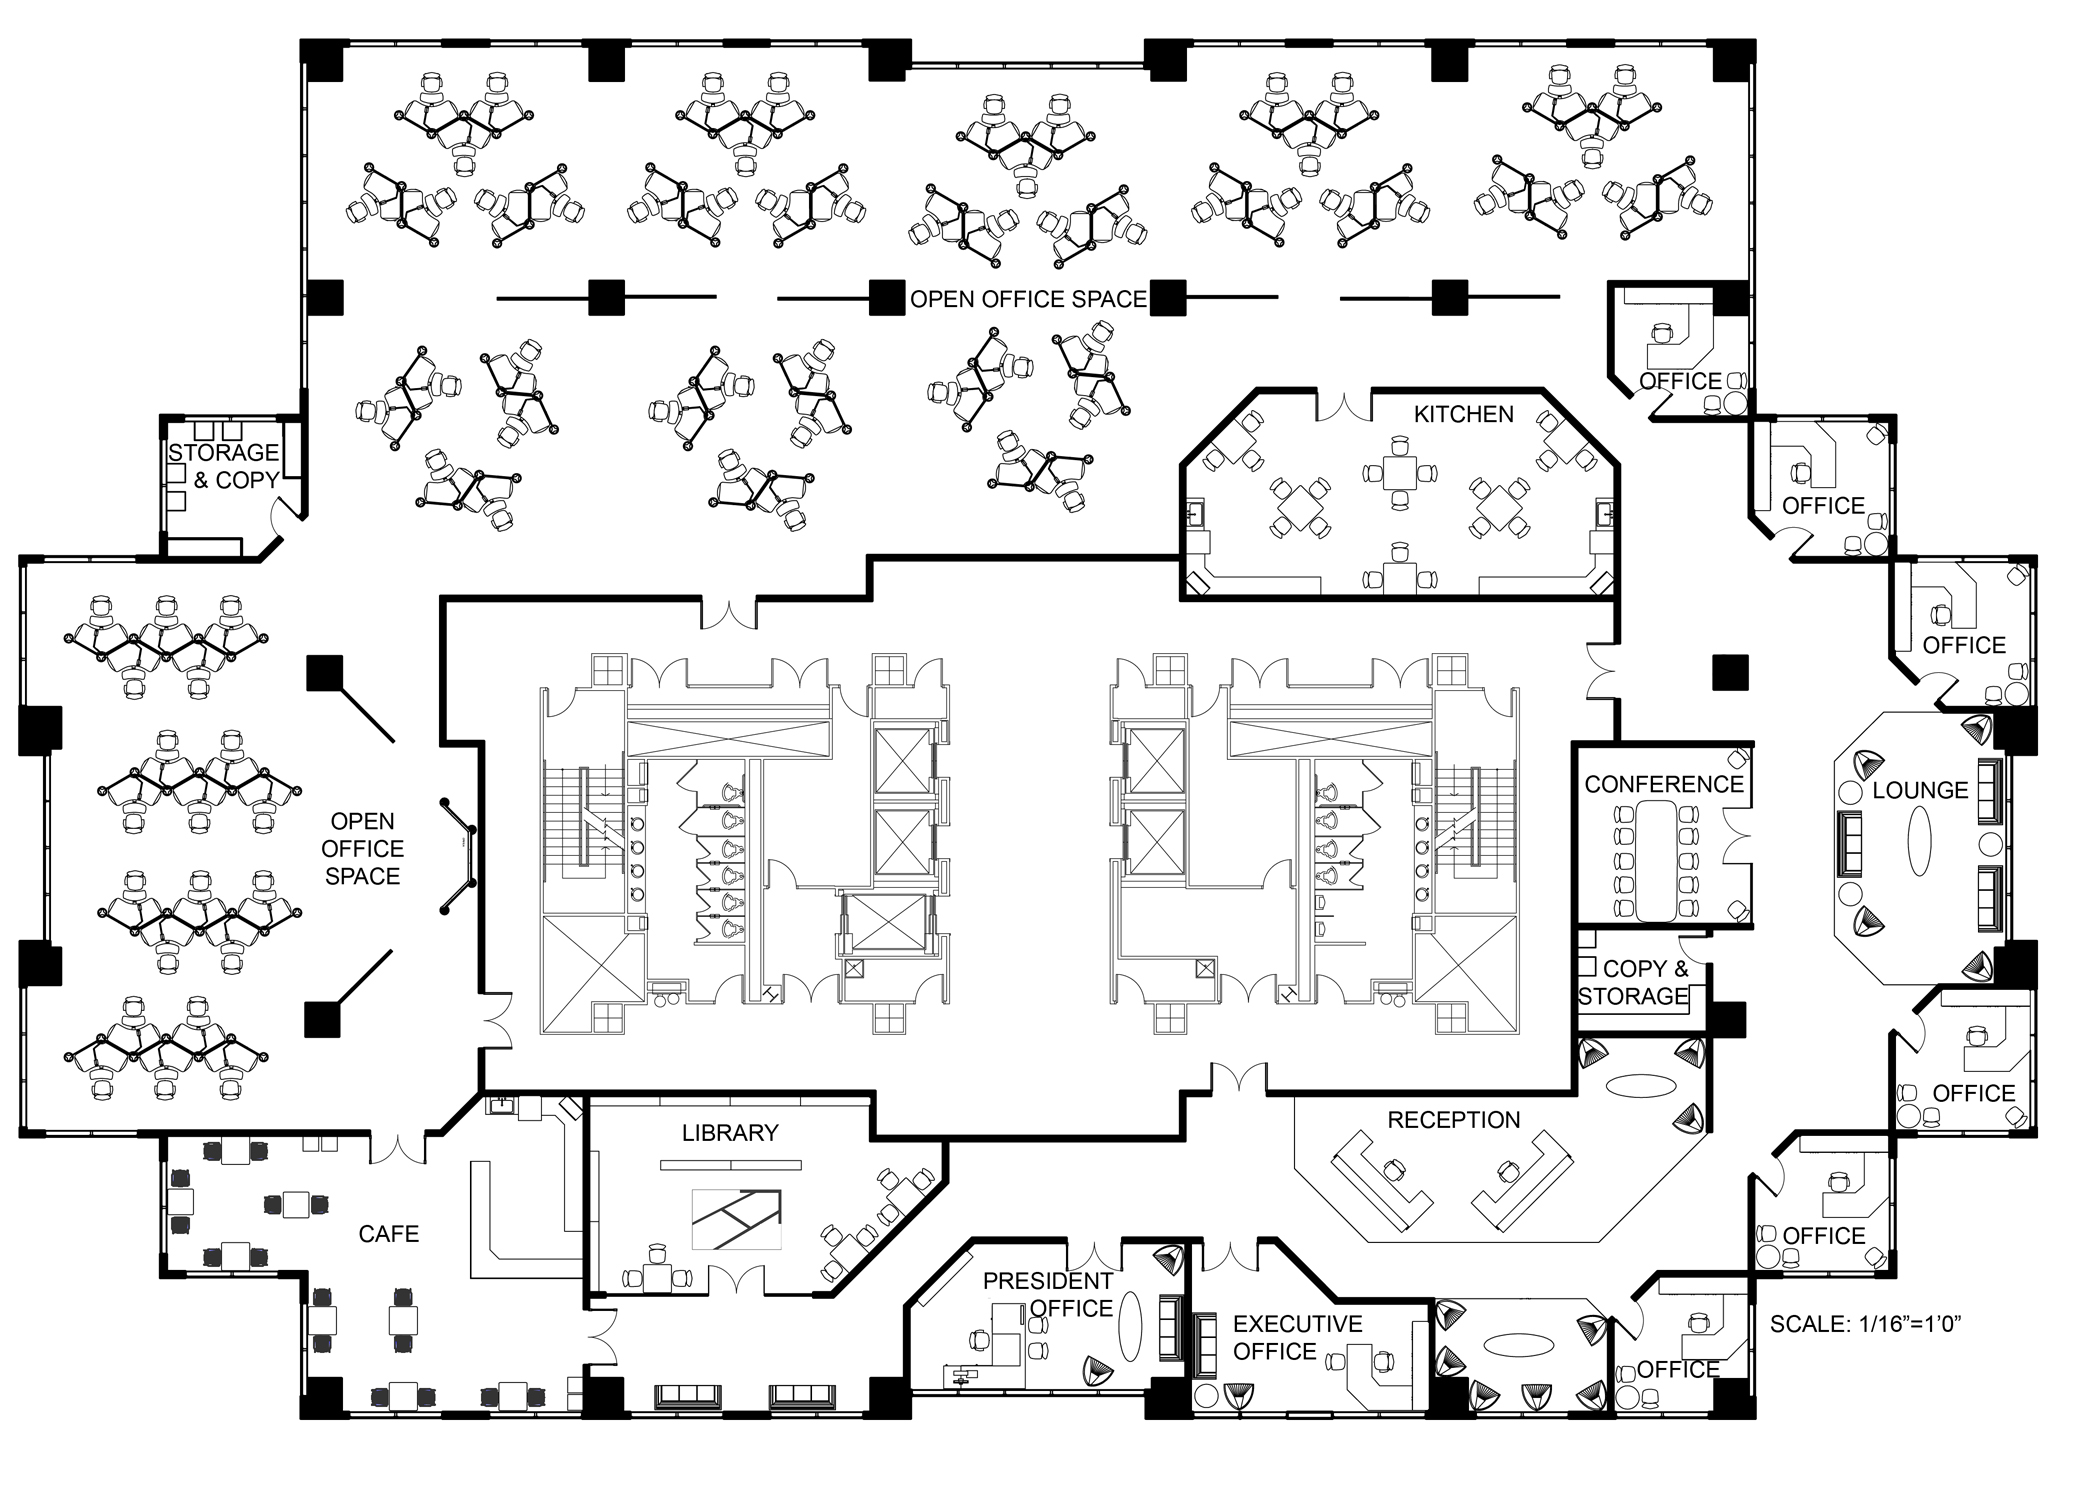 Open office office spaces and offices on pinterest Office building floor plan layout